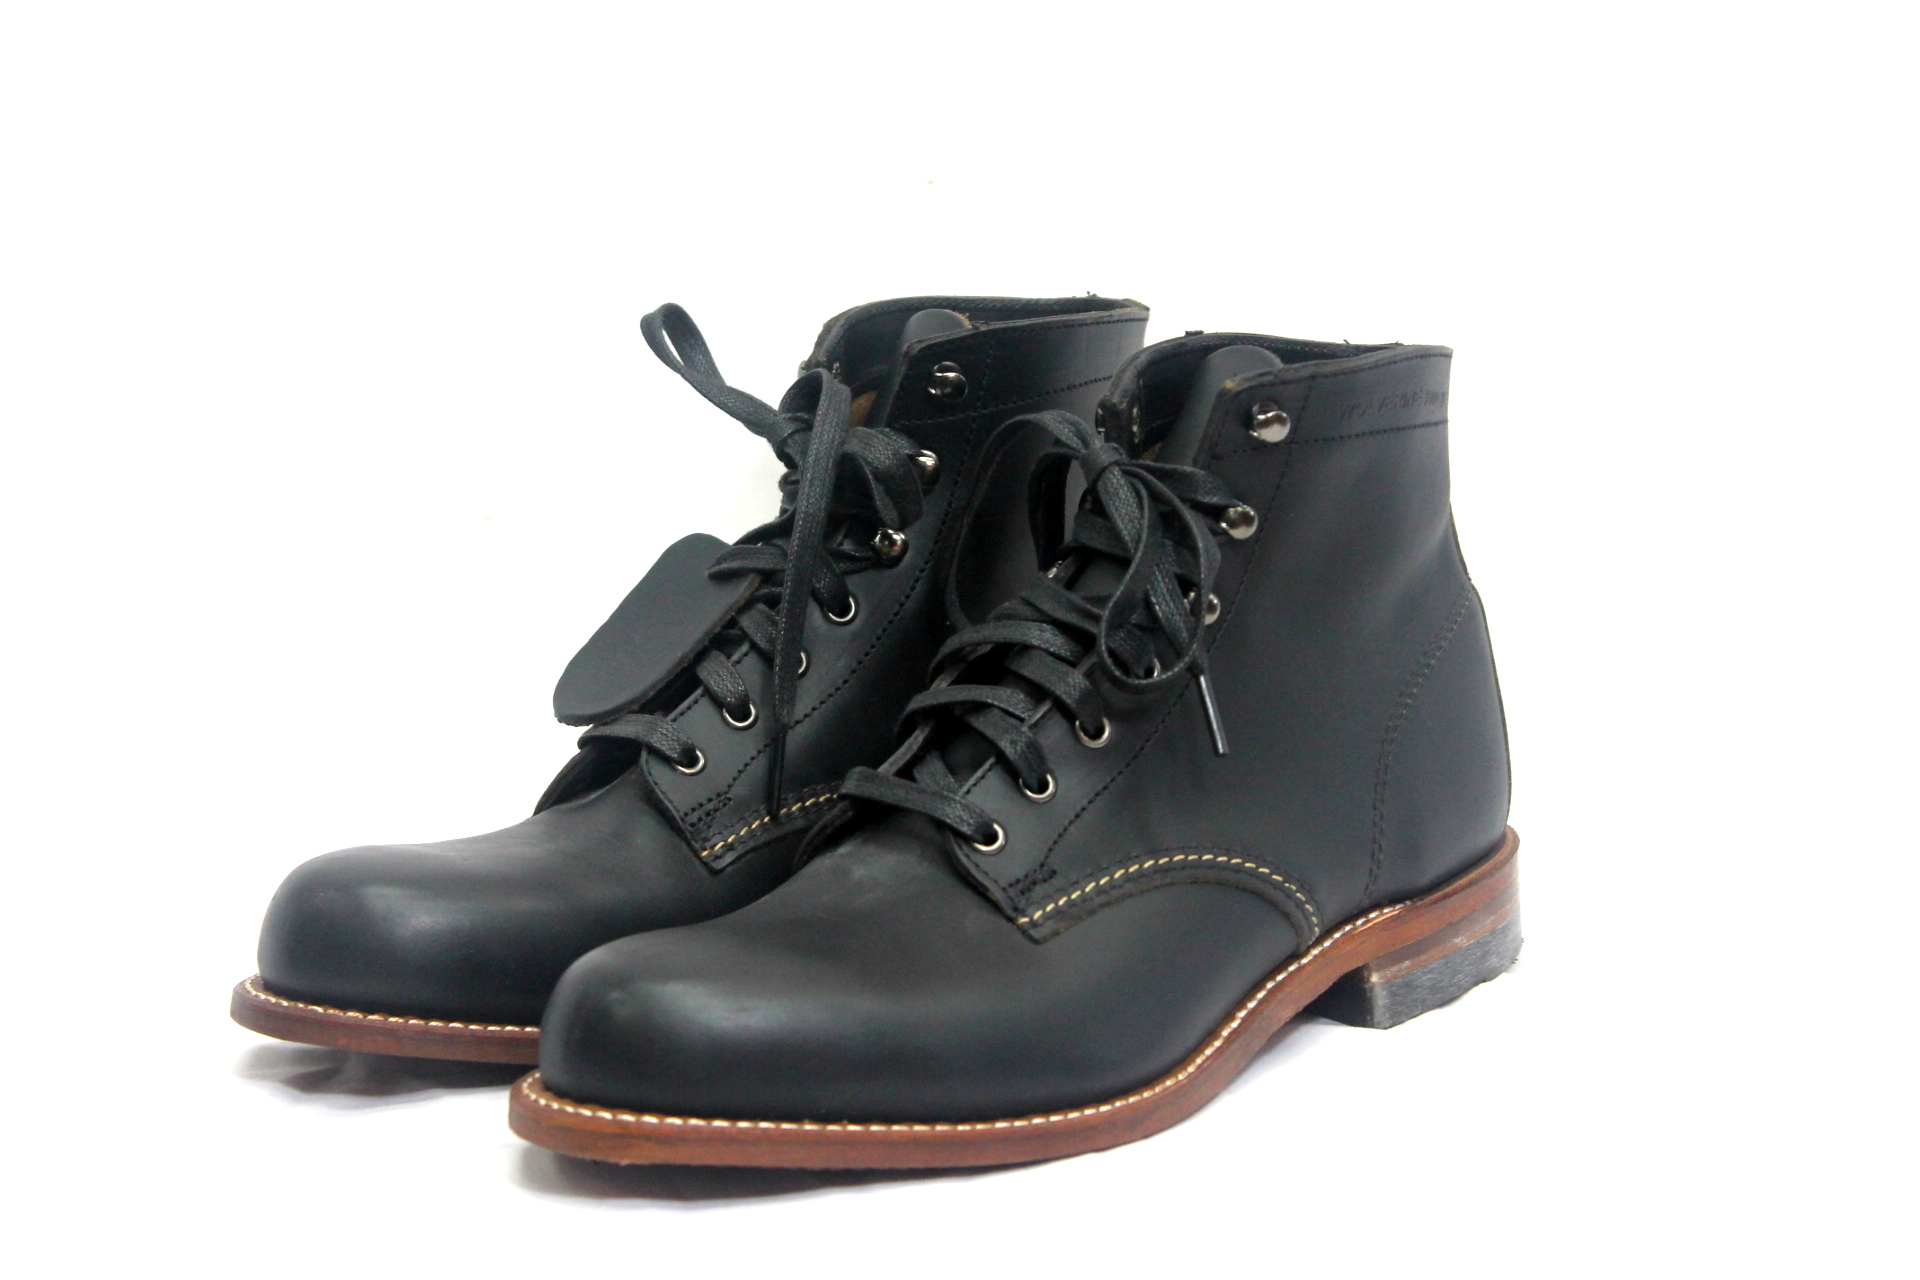 wolverine 1000miles boots black in motion sports